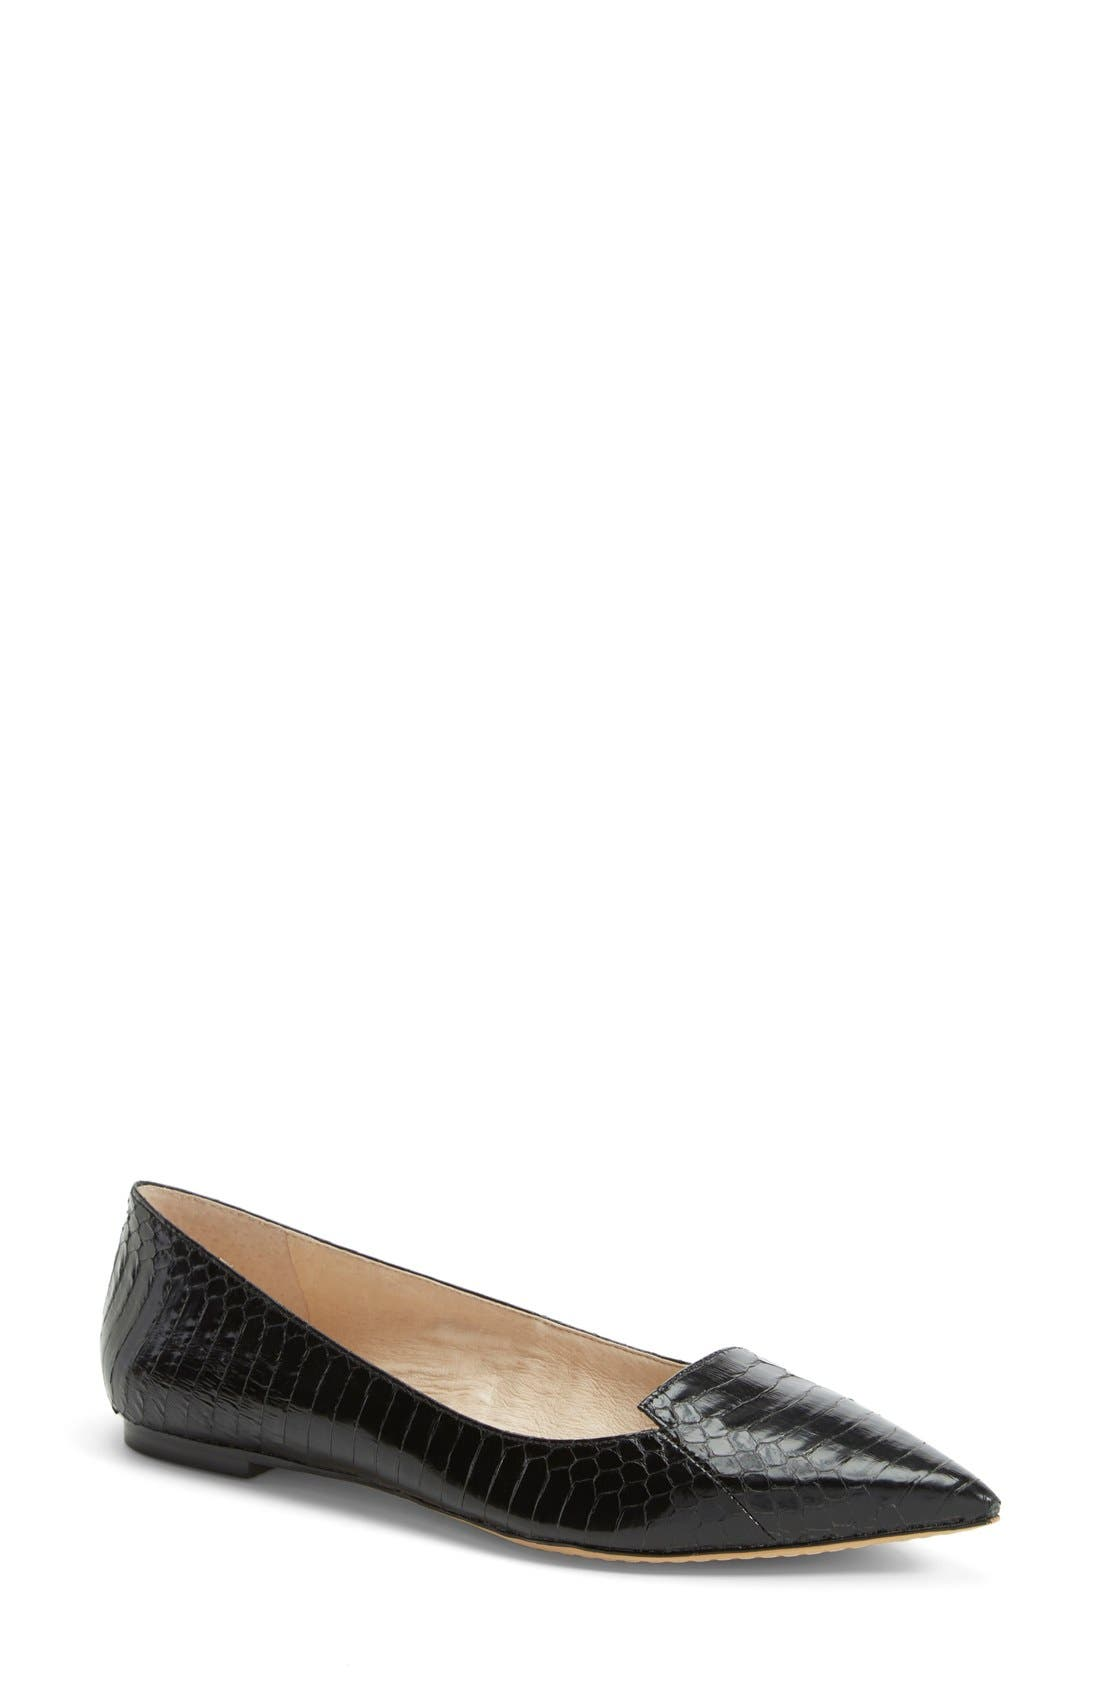 'Empa' Pointy Toe Loafer Flat,                             Main thumbnail 1, color,                             001